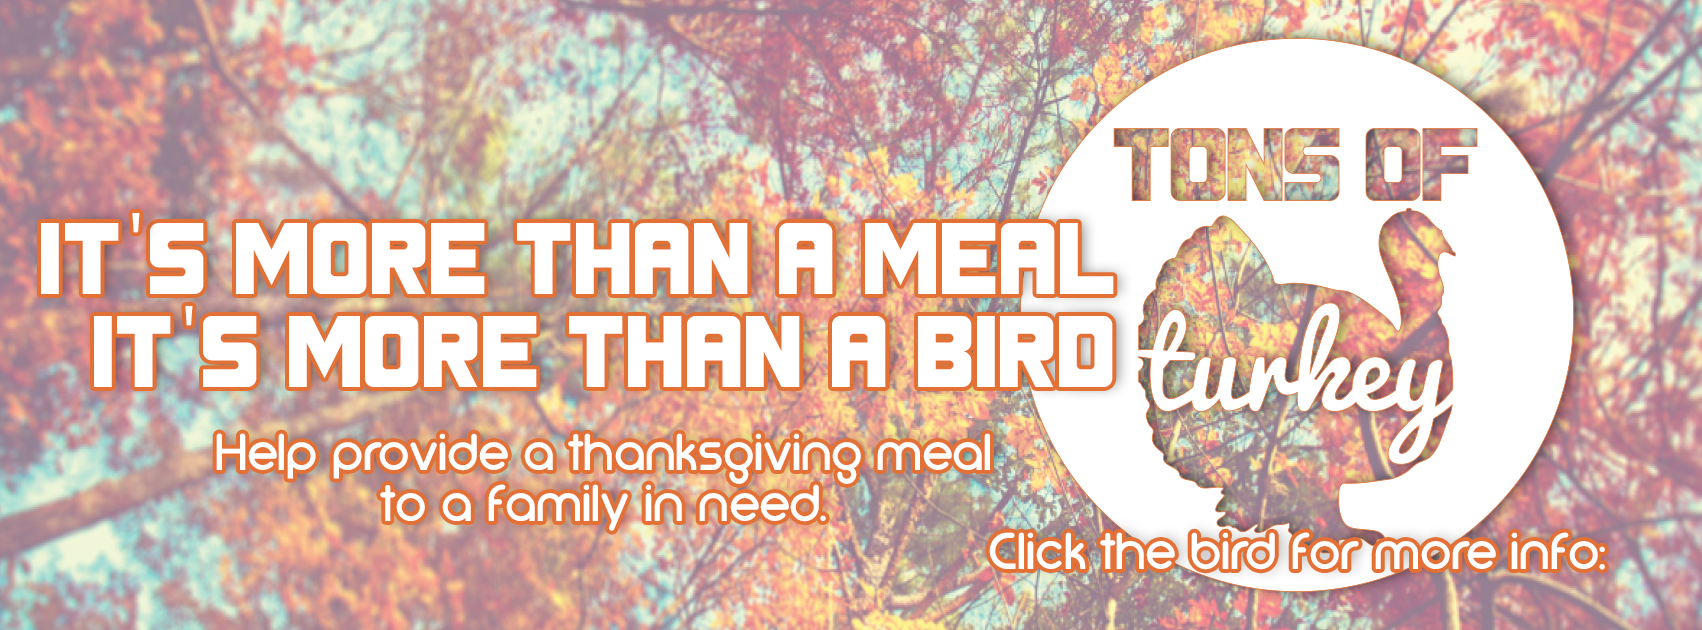 It's More Than A Meal…More Than A Bird